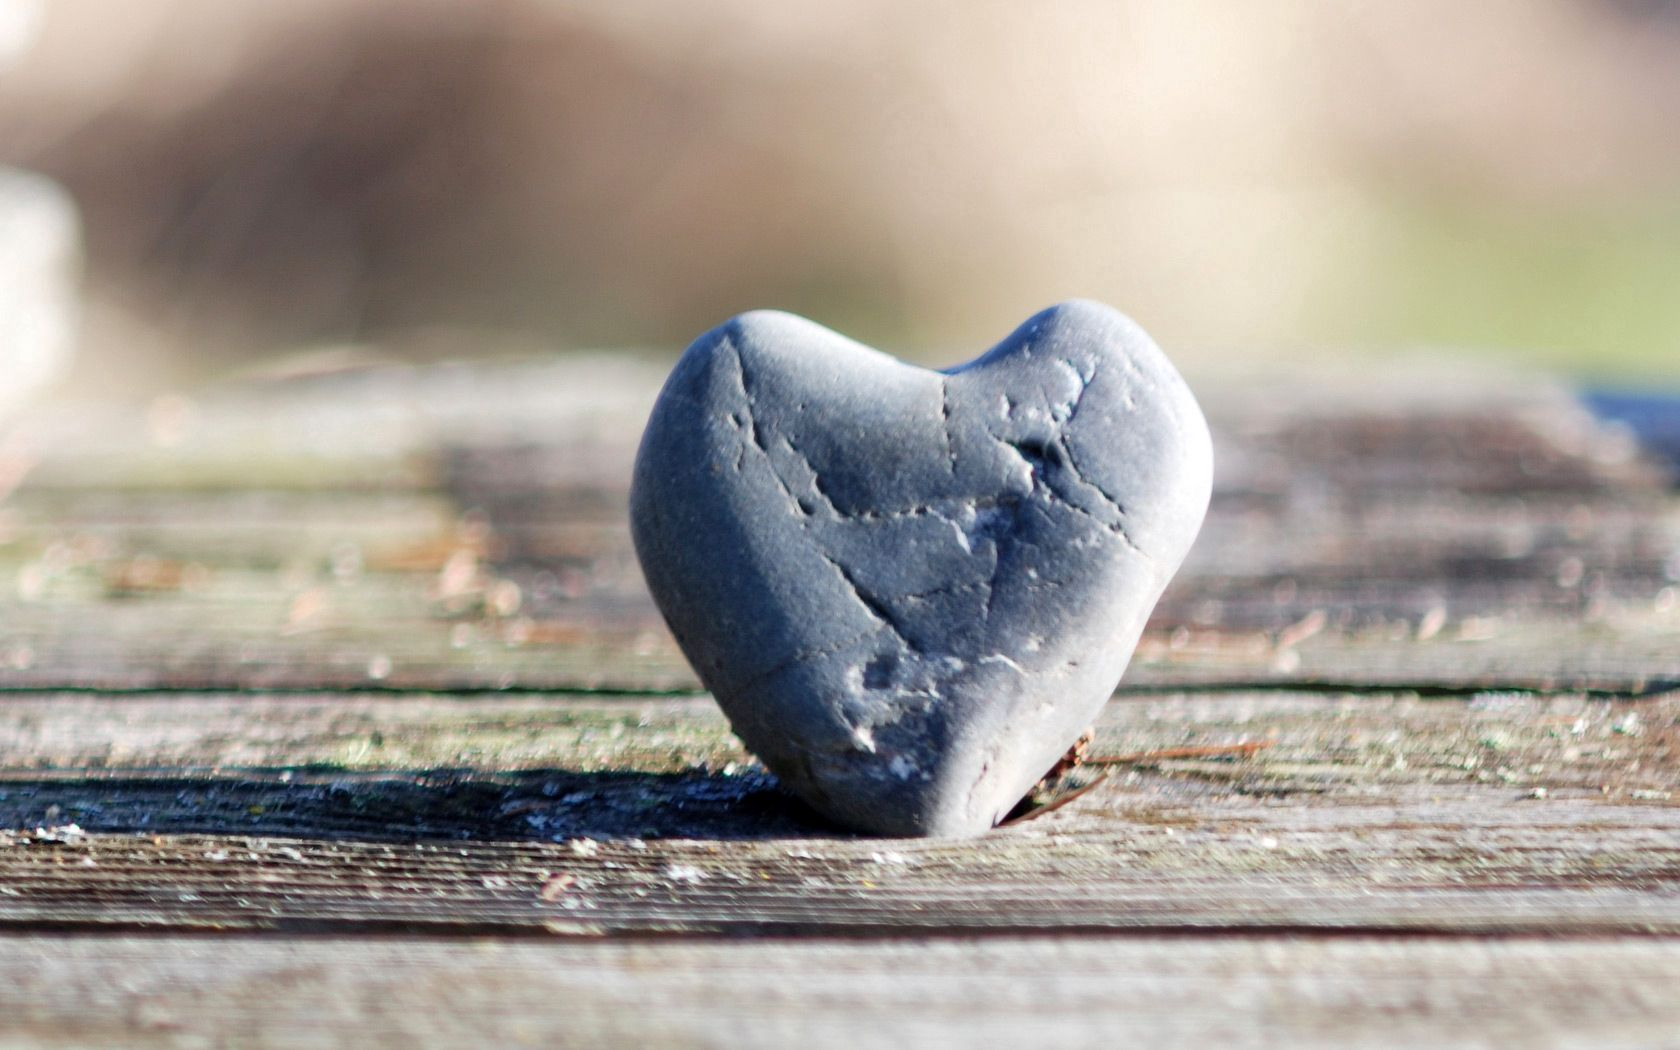 95652 download wallpaper Love, Heart, Rock, Stone, Points, Point, Surface screensavers and pictures for free